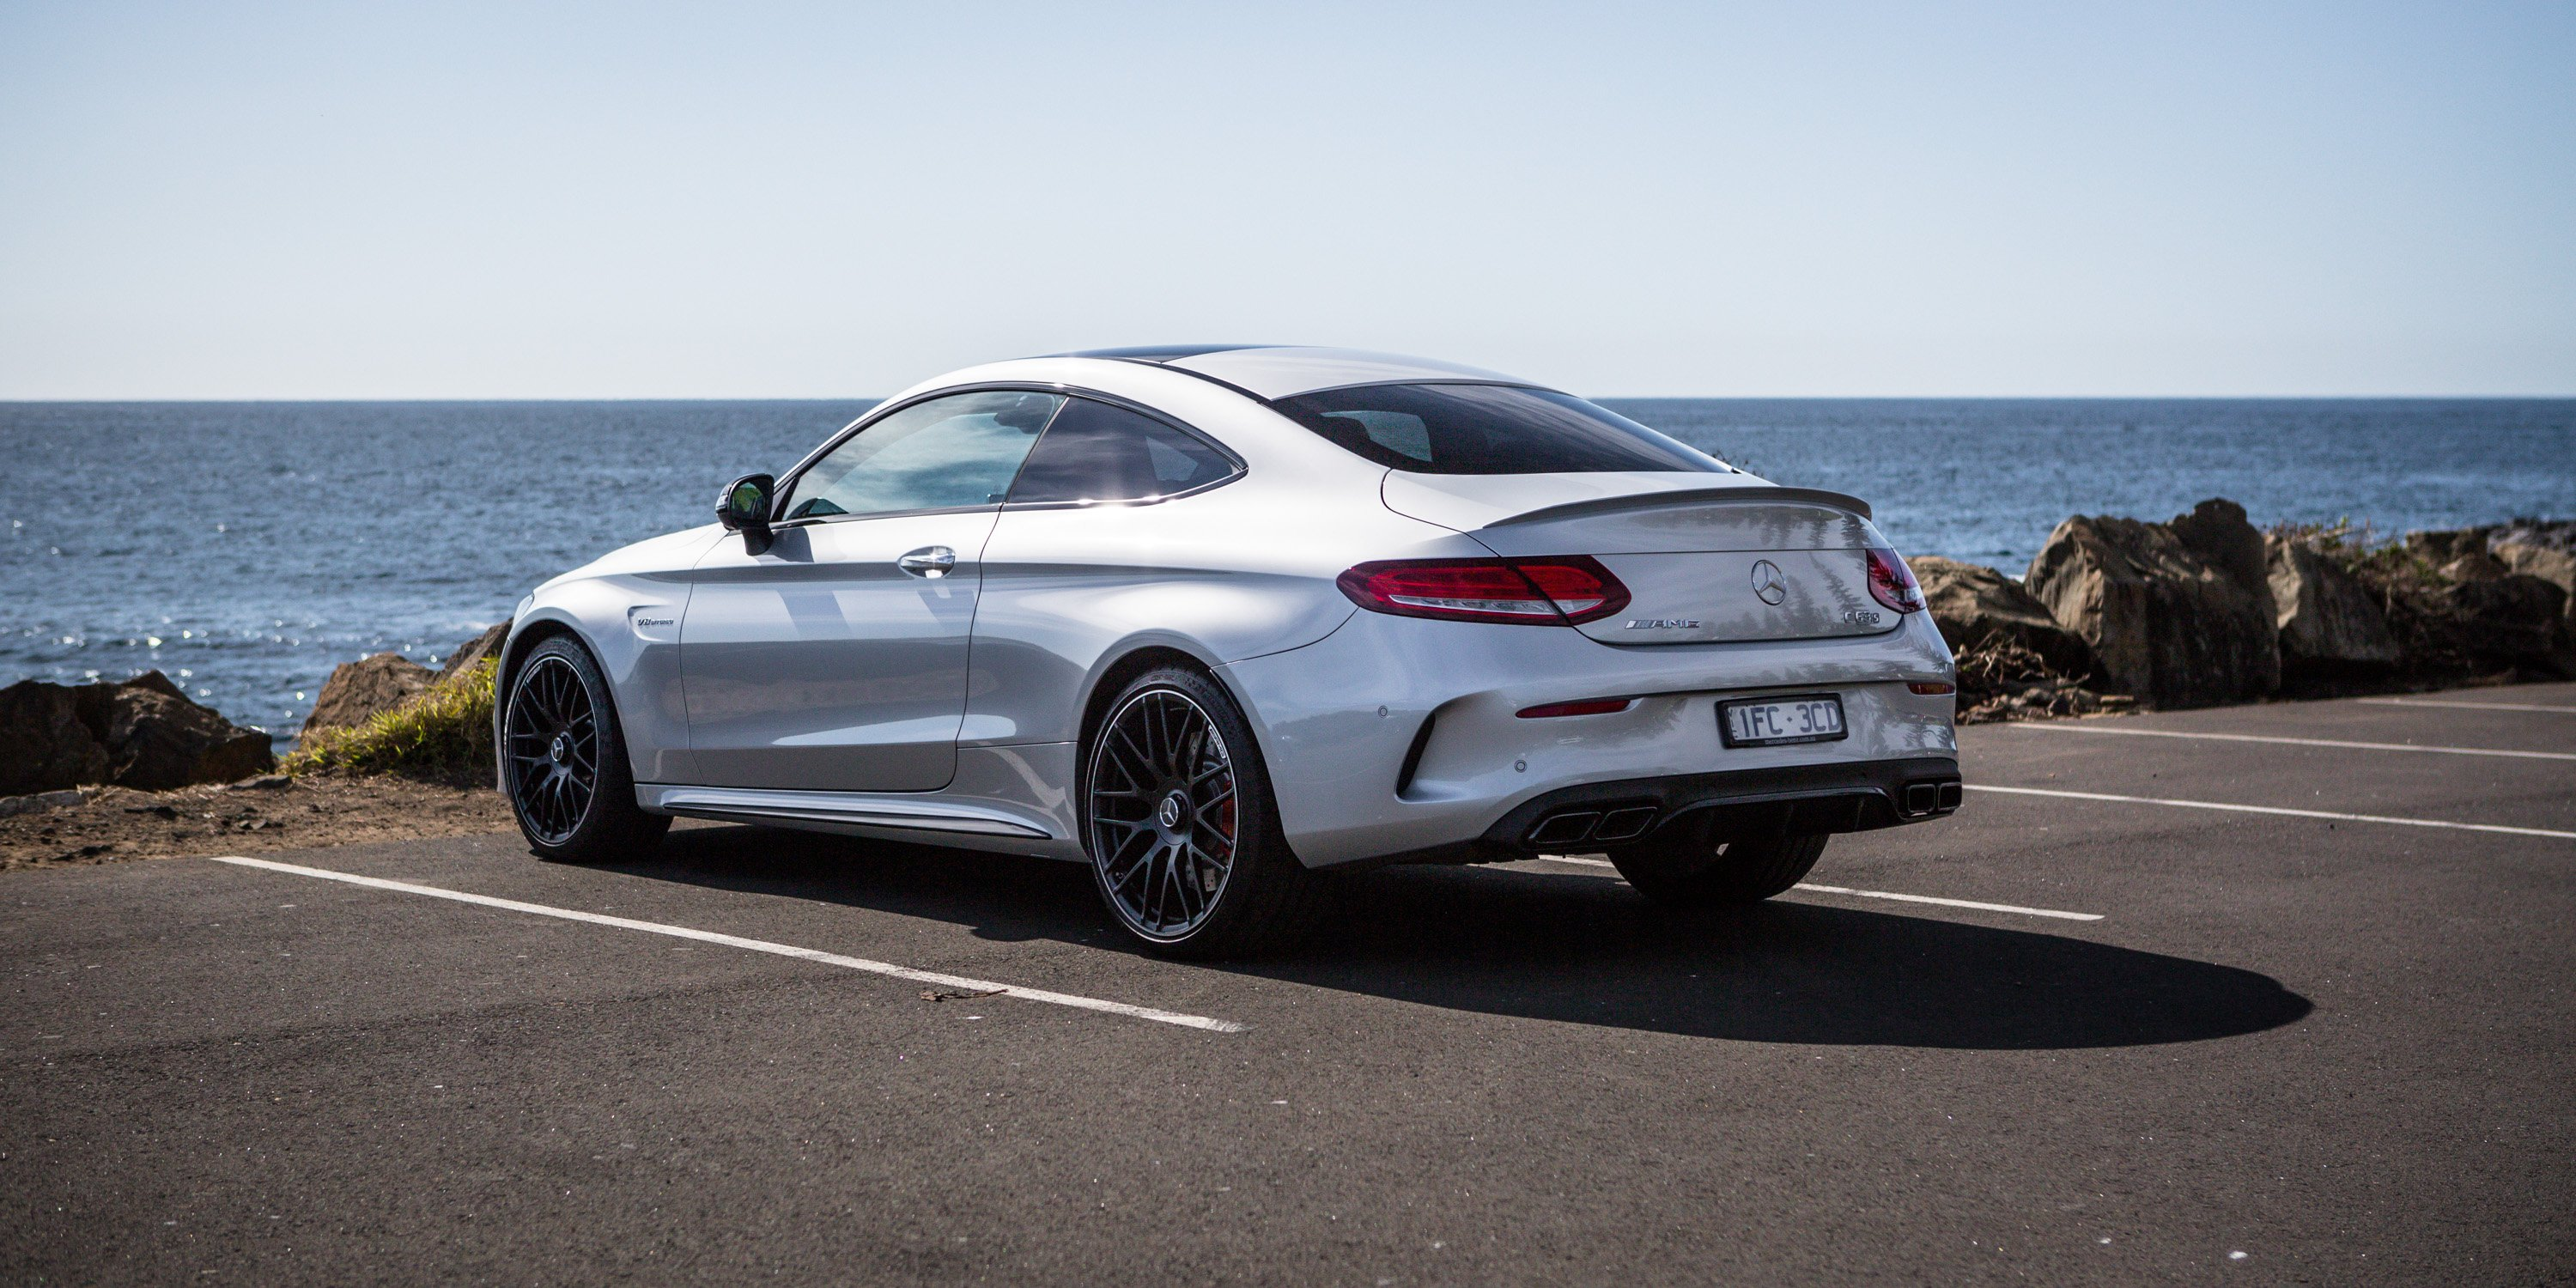 2017 C63 Amg Coupe Price >> 2017 Mercedes-AMG C63 S Coupe Review - photos | CarAdvice